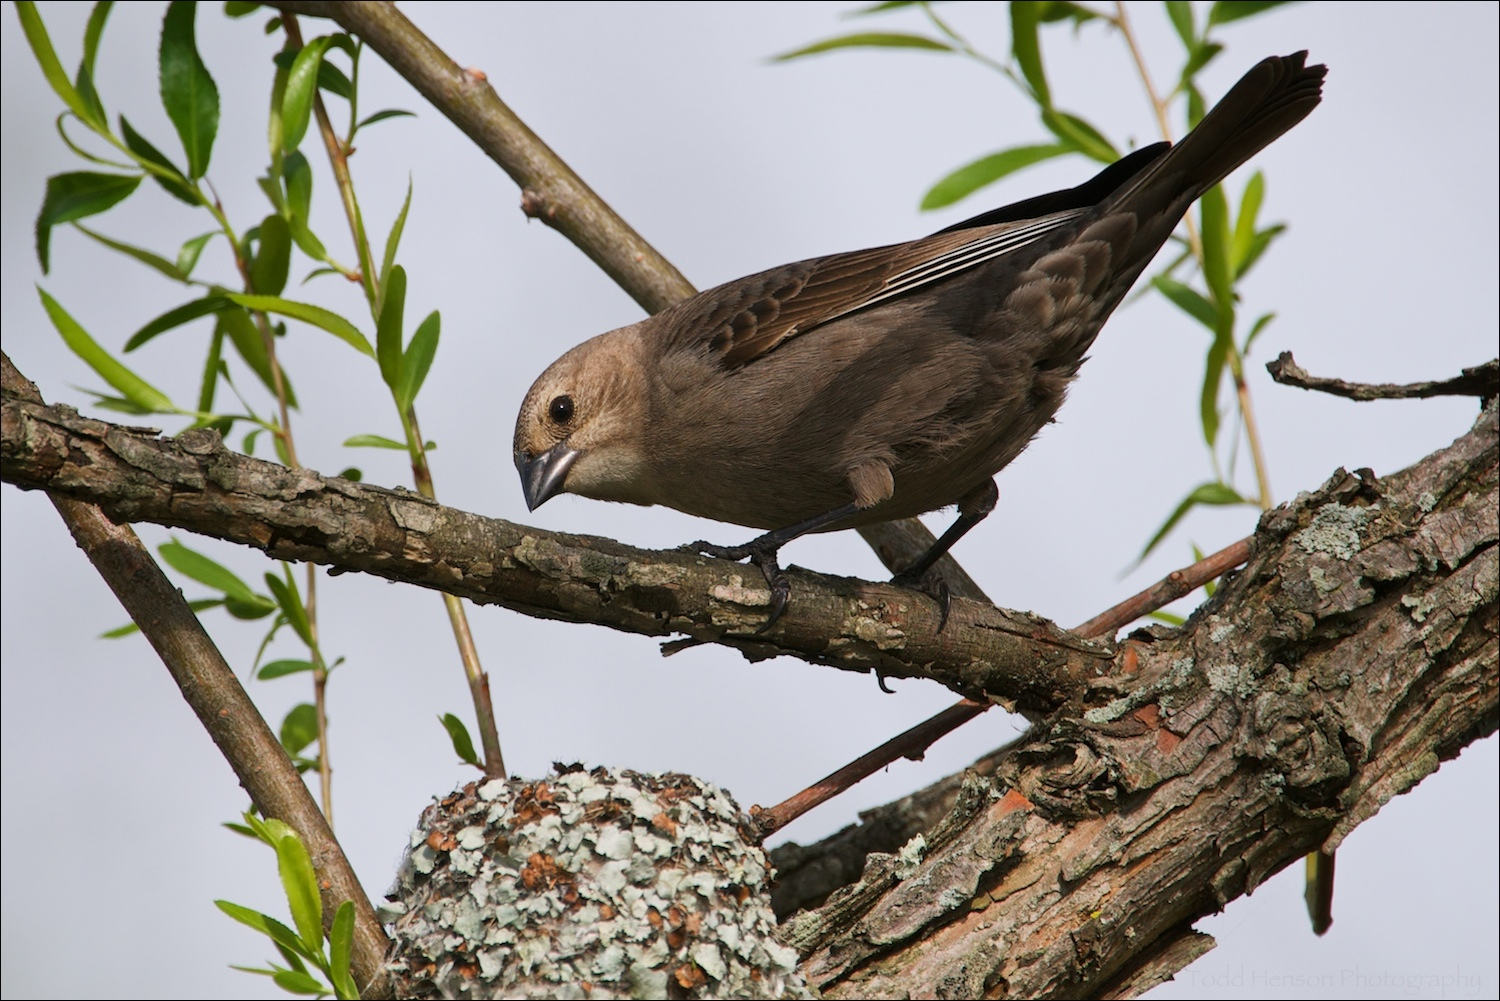 Female Brown-headed Cowbird looking into a Blue-gray Gnatcatcher nest.